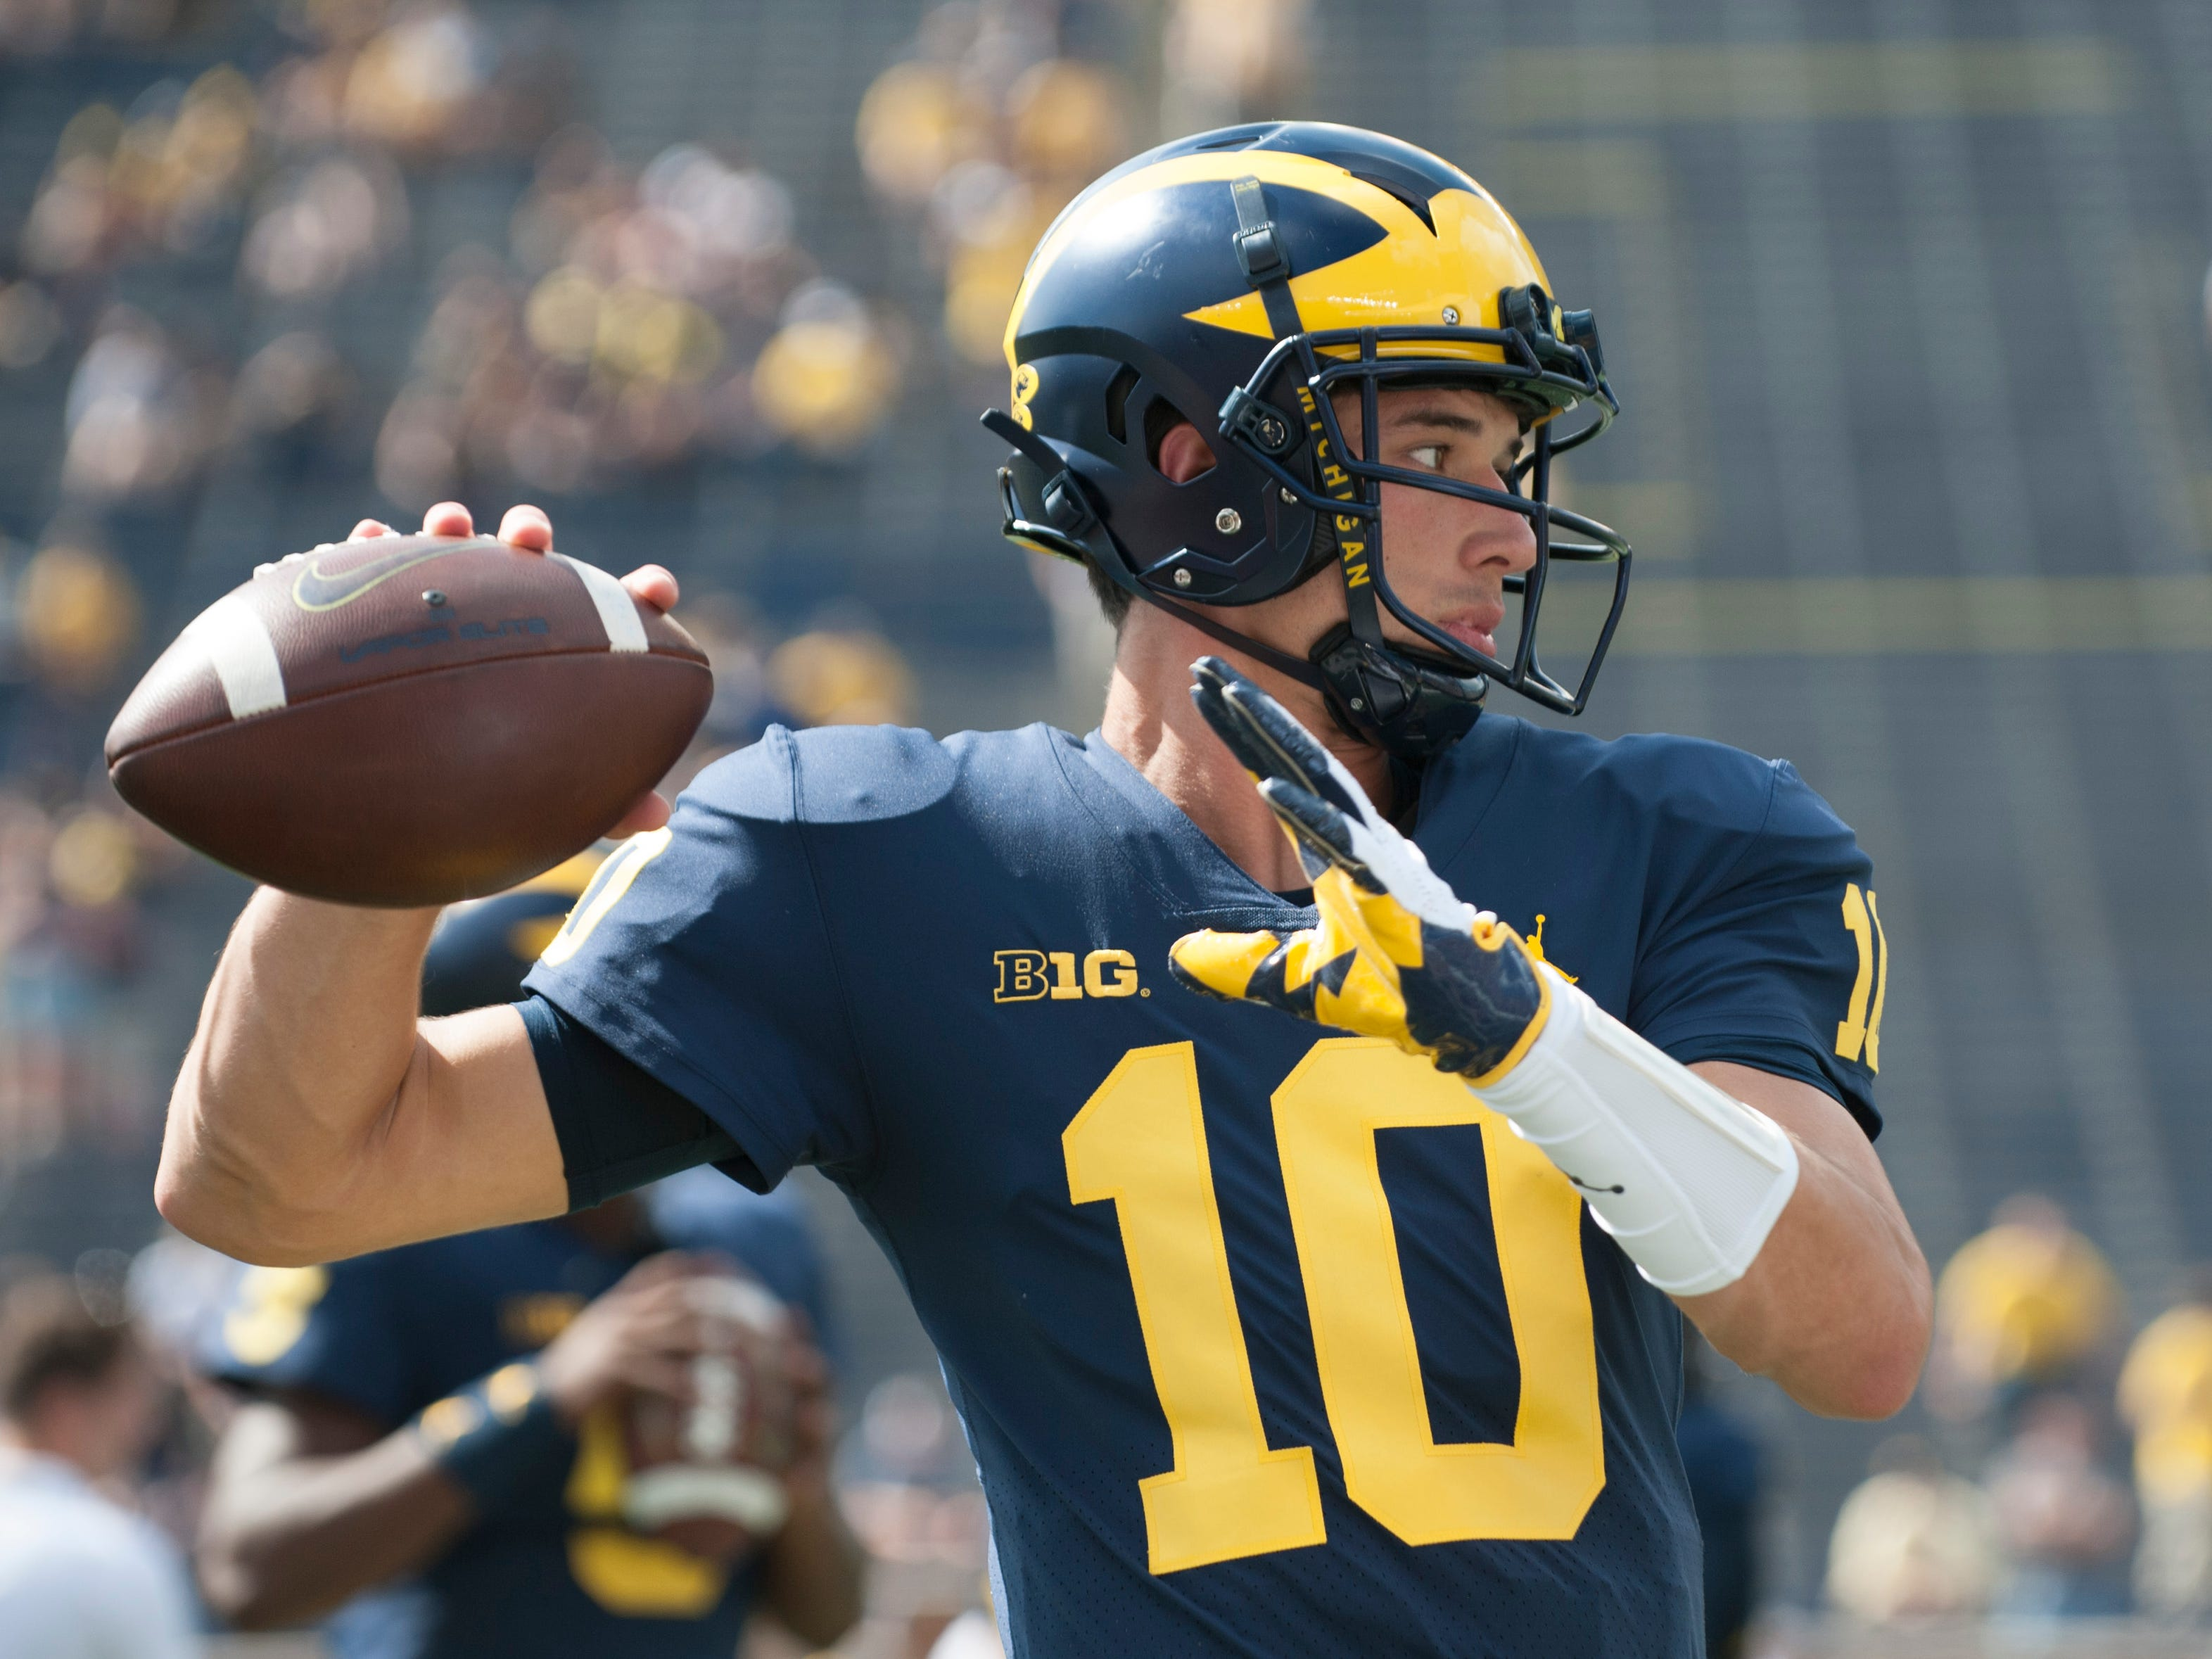 Michigan quarterback Dylan McCaffrey warms up before the game.